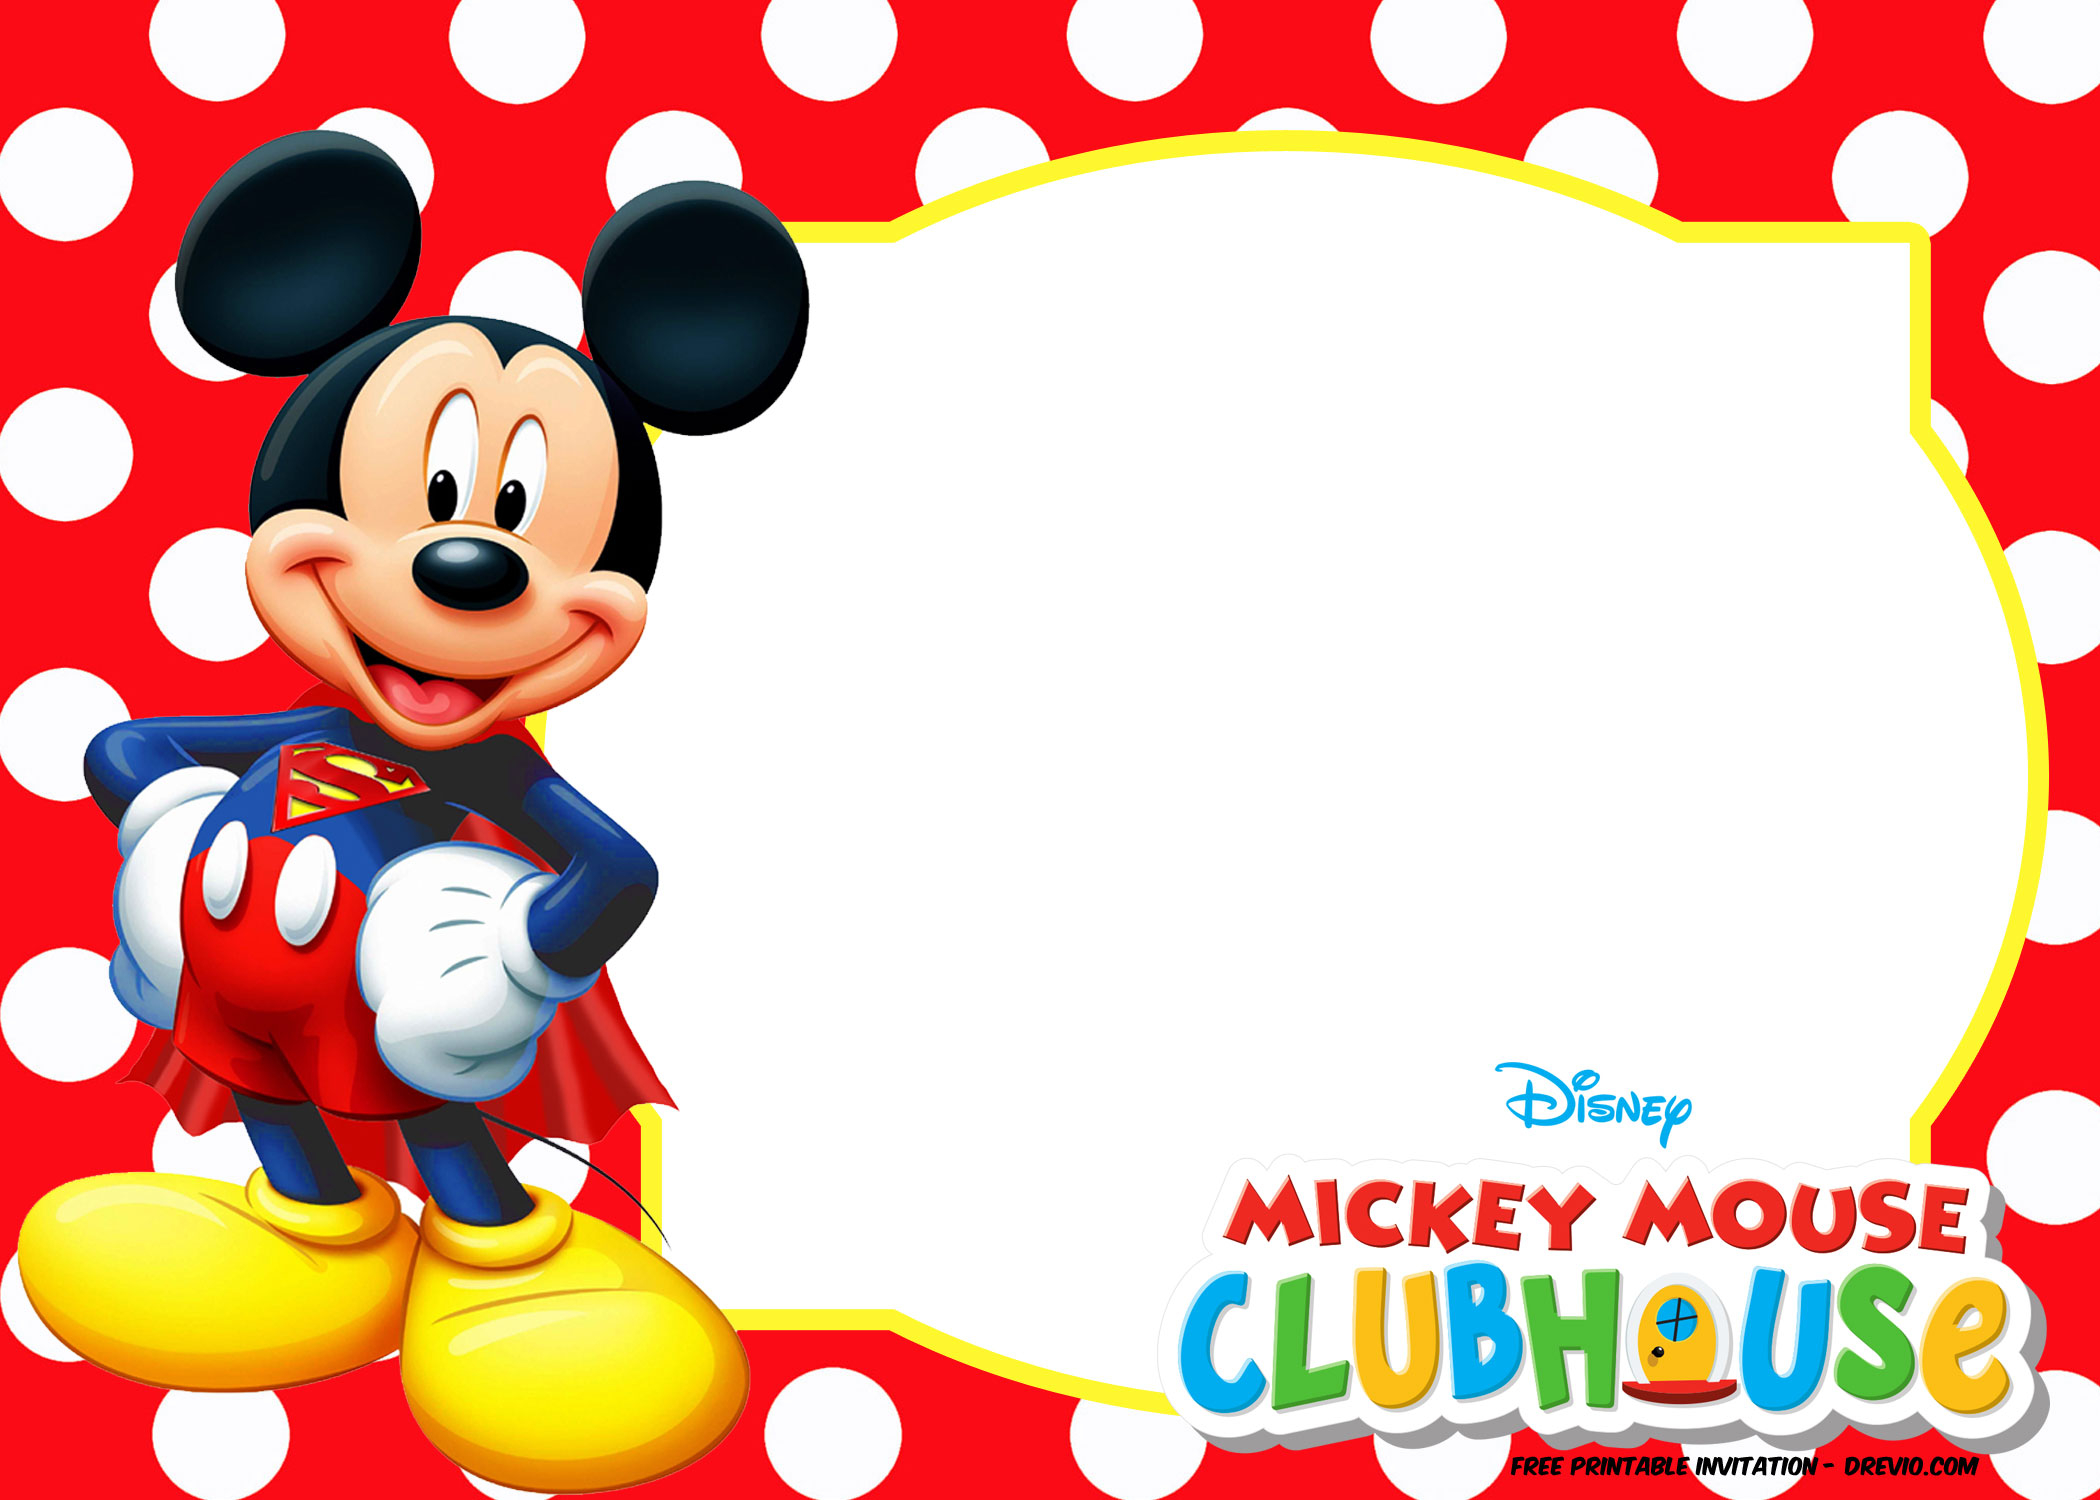 61 Special Mickey Mouse Clubhouse Blank Invitation Template Free within dimensions 2100 X 1500